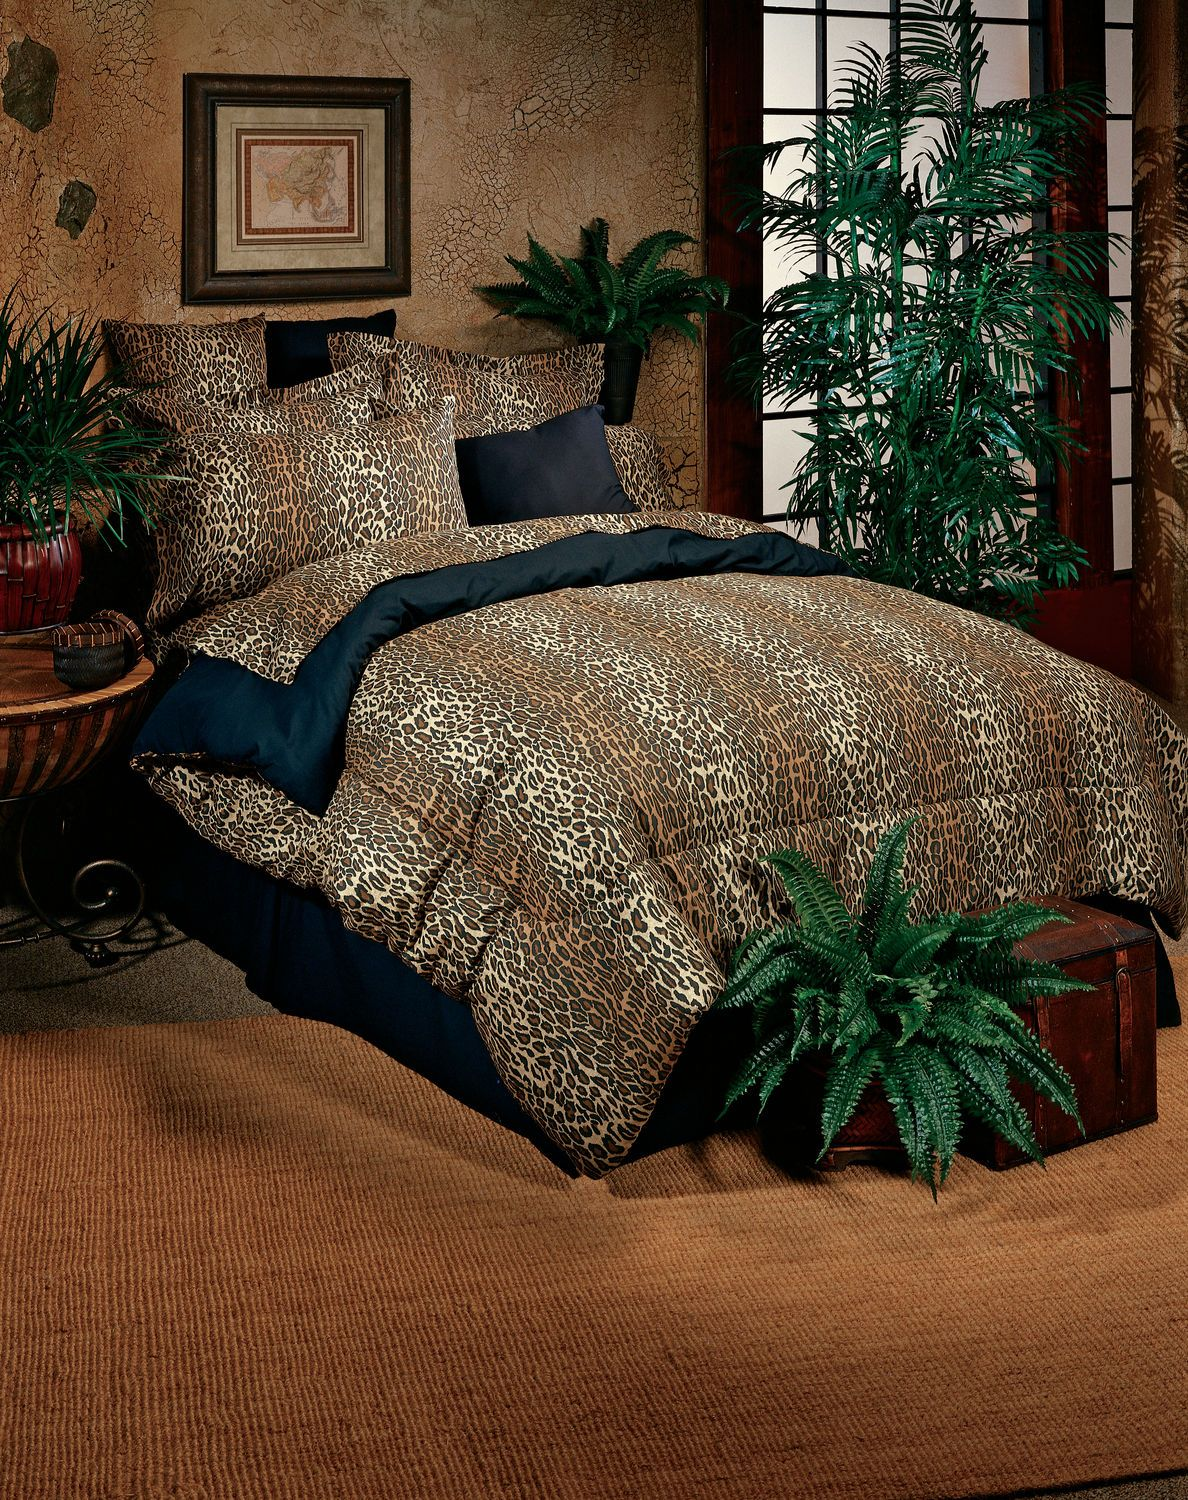 Animal Print Bedroom Decorating Ideas Best 2017 Leopard Fashion Pinterest And Bedrooms